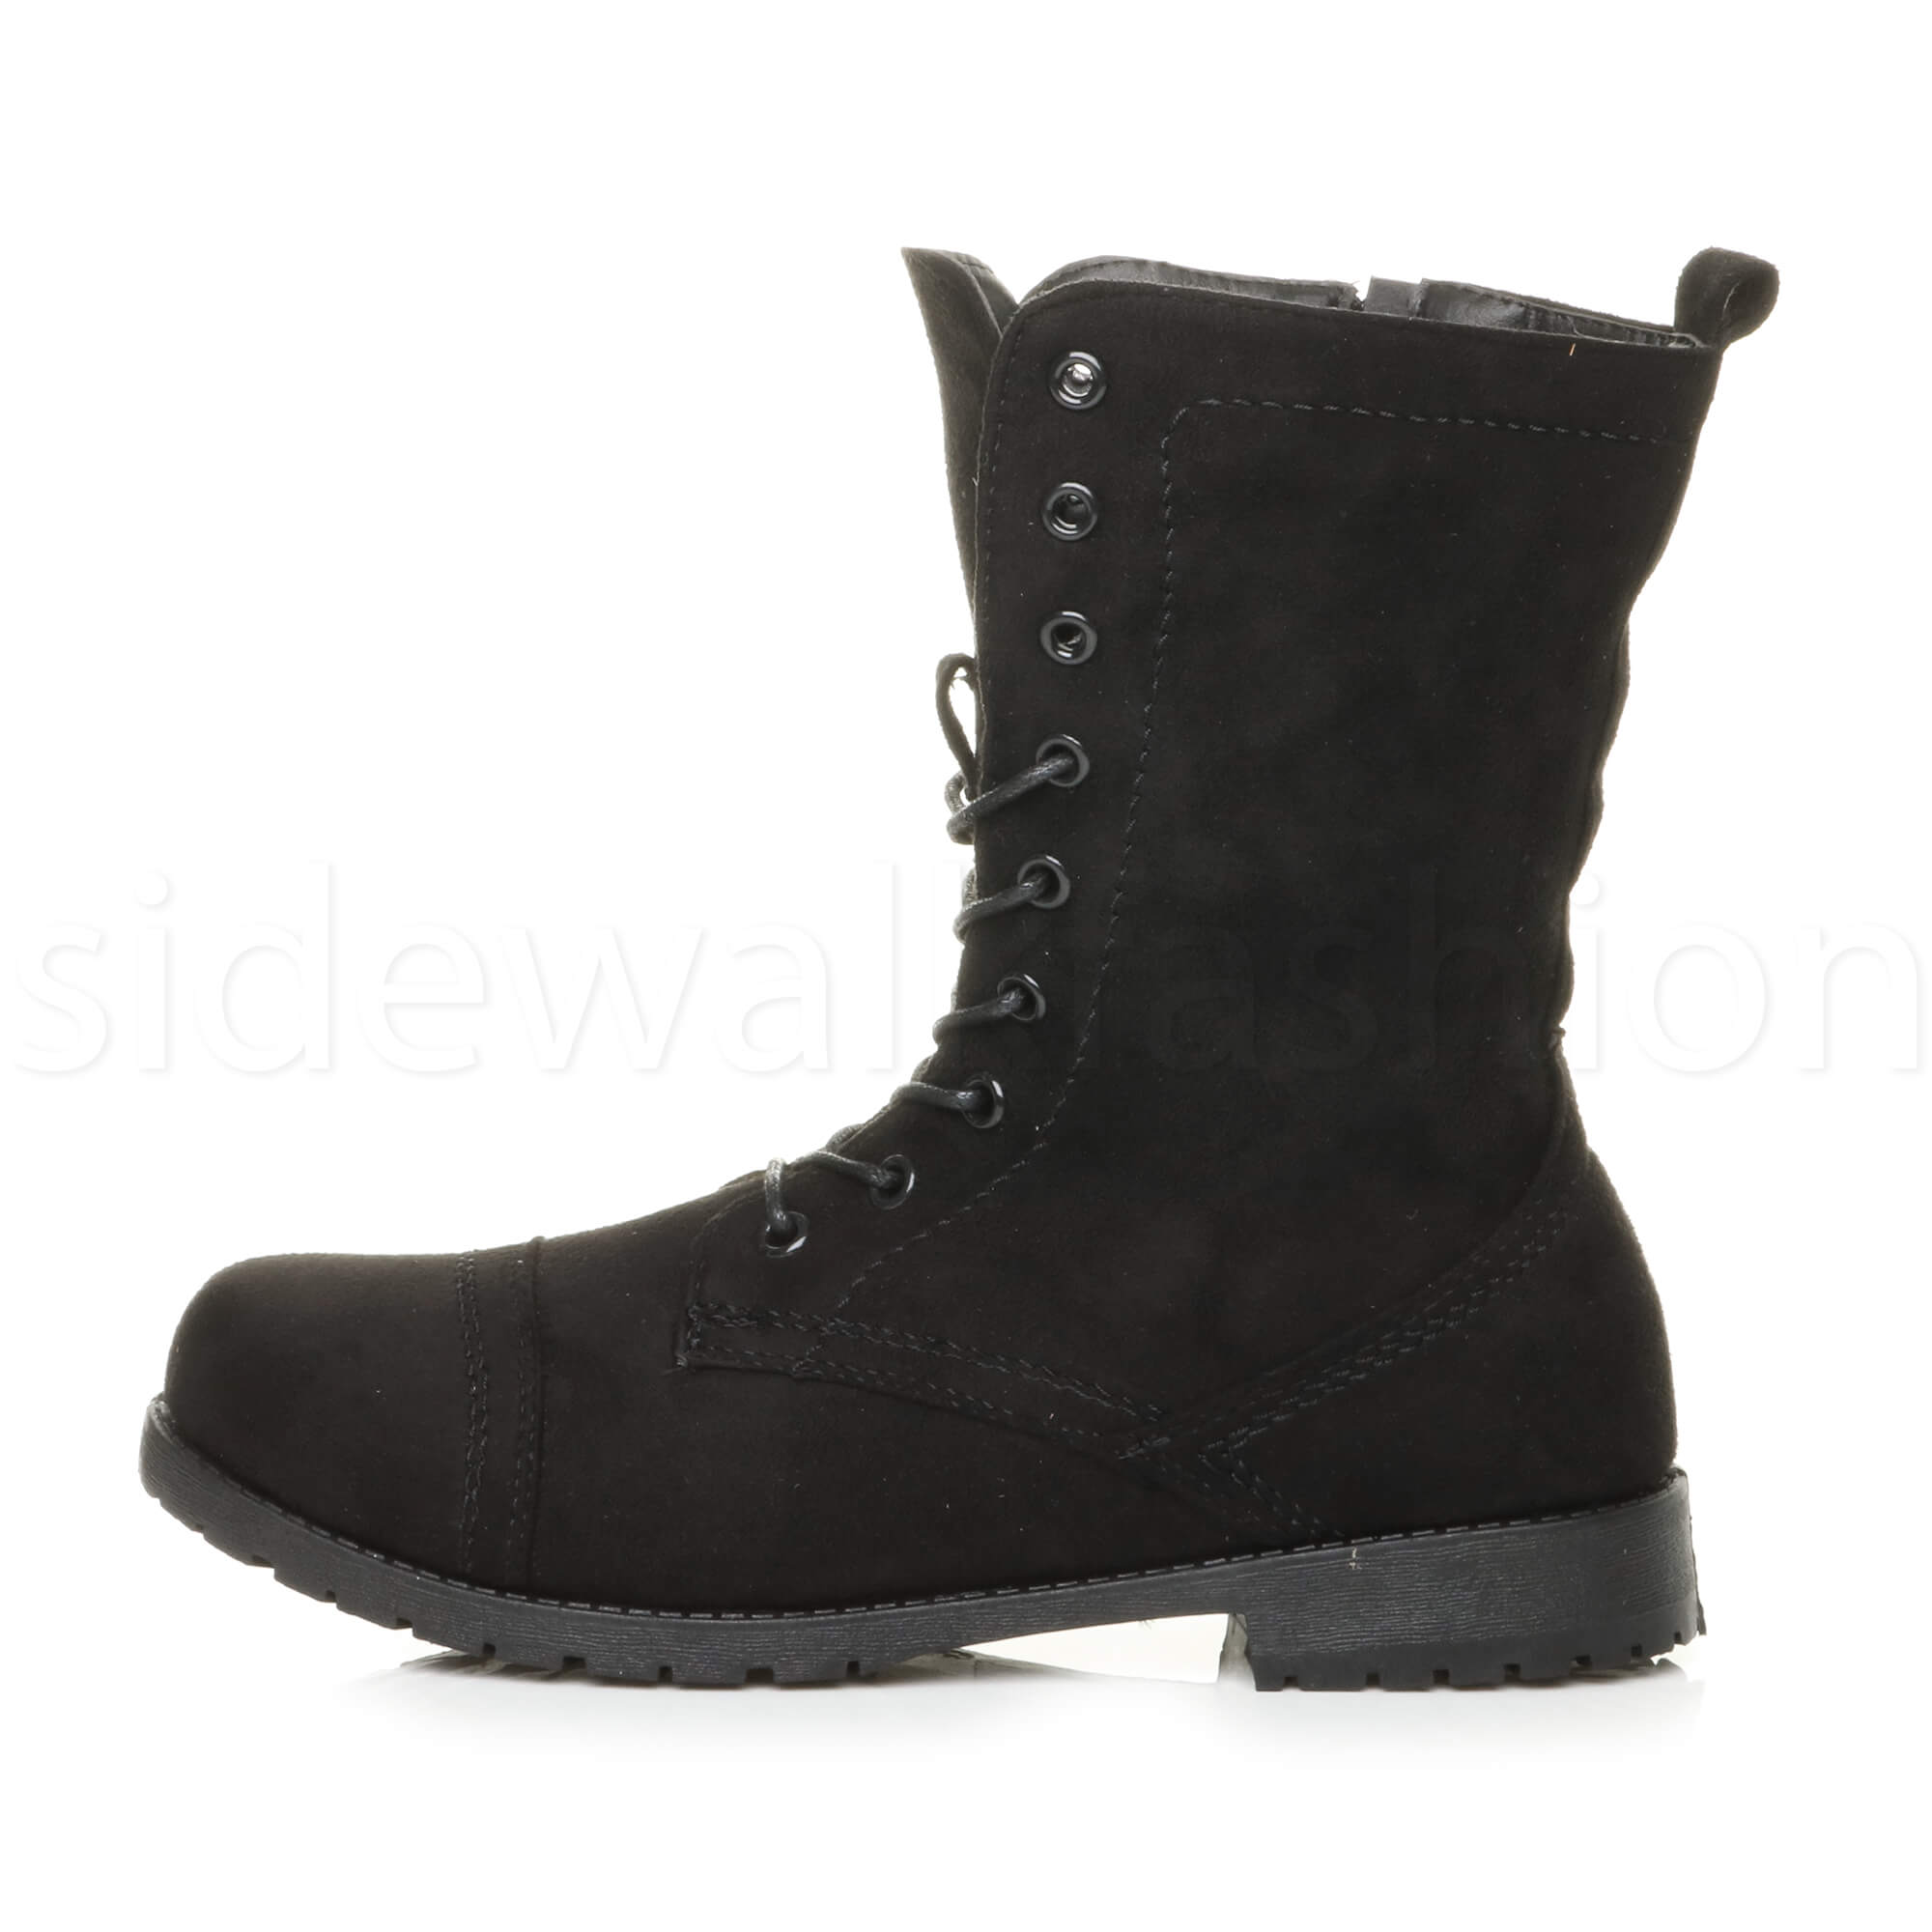 Womens-ladies-low-heel-flat-lace-up-zip-combat-biker-military-ankle-boots-size thumbnail 67